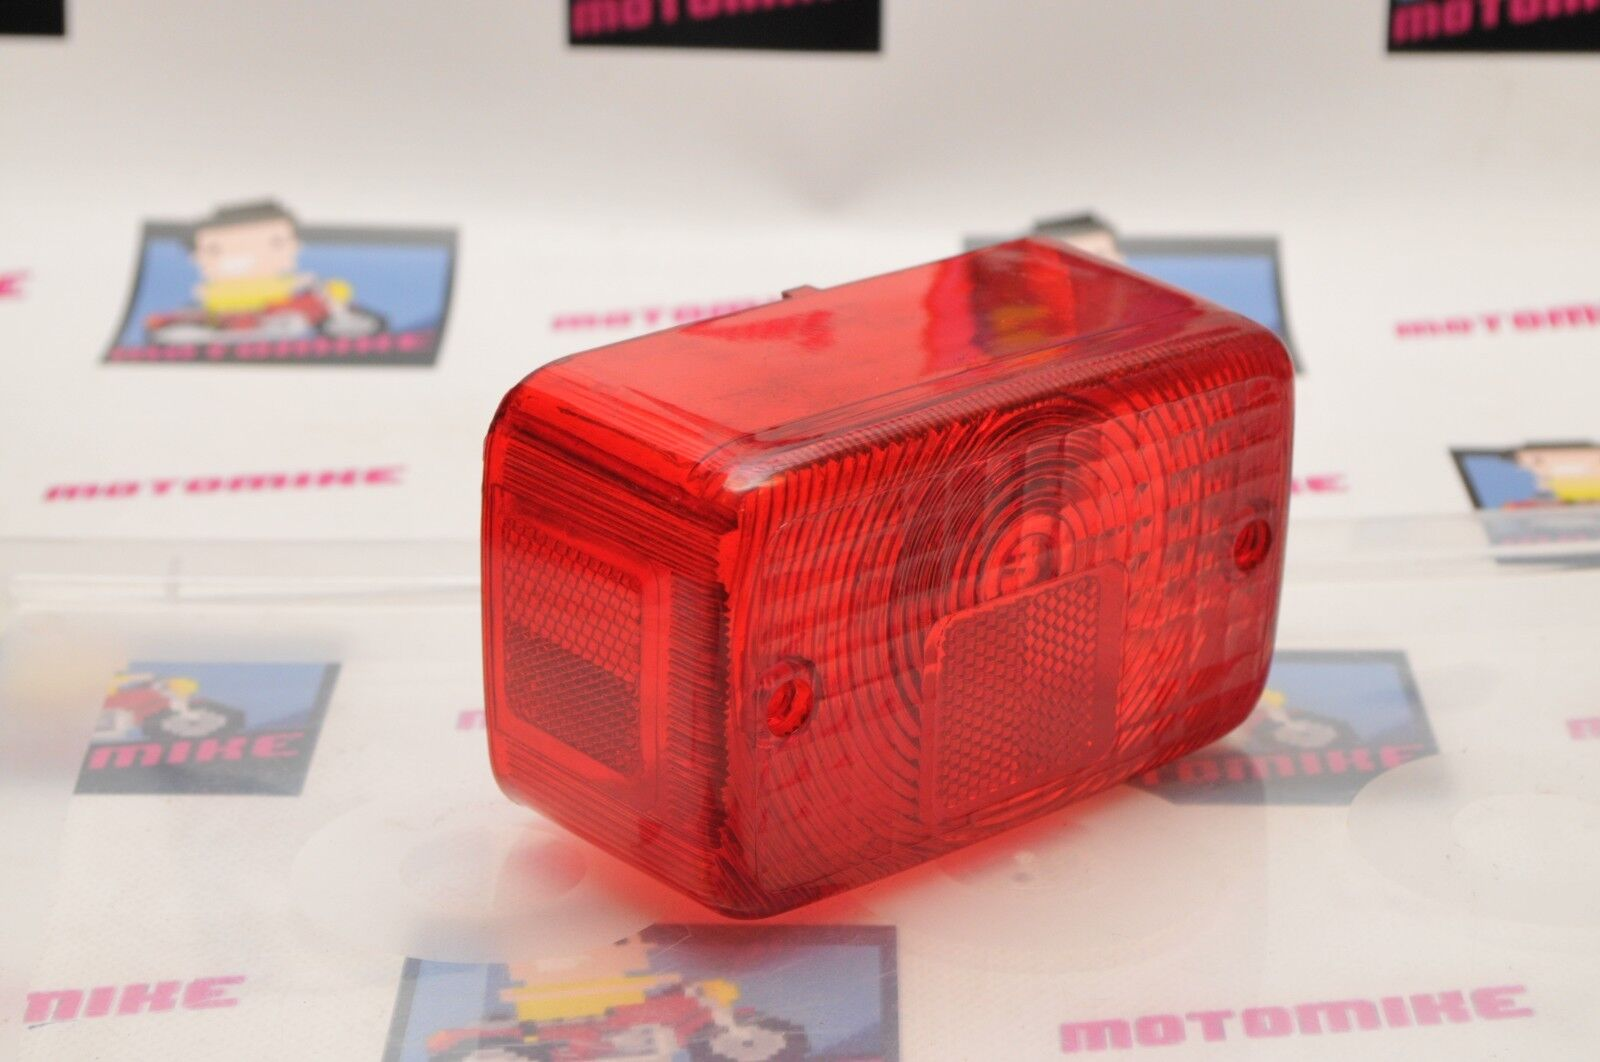 YAMAHA YFB250 / FW TIMBERWOLF TAIL LIGHT LENS TAILIGHT 62-21543